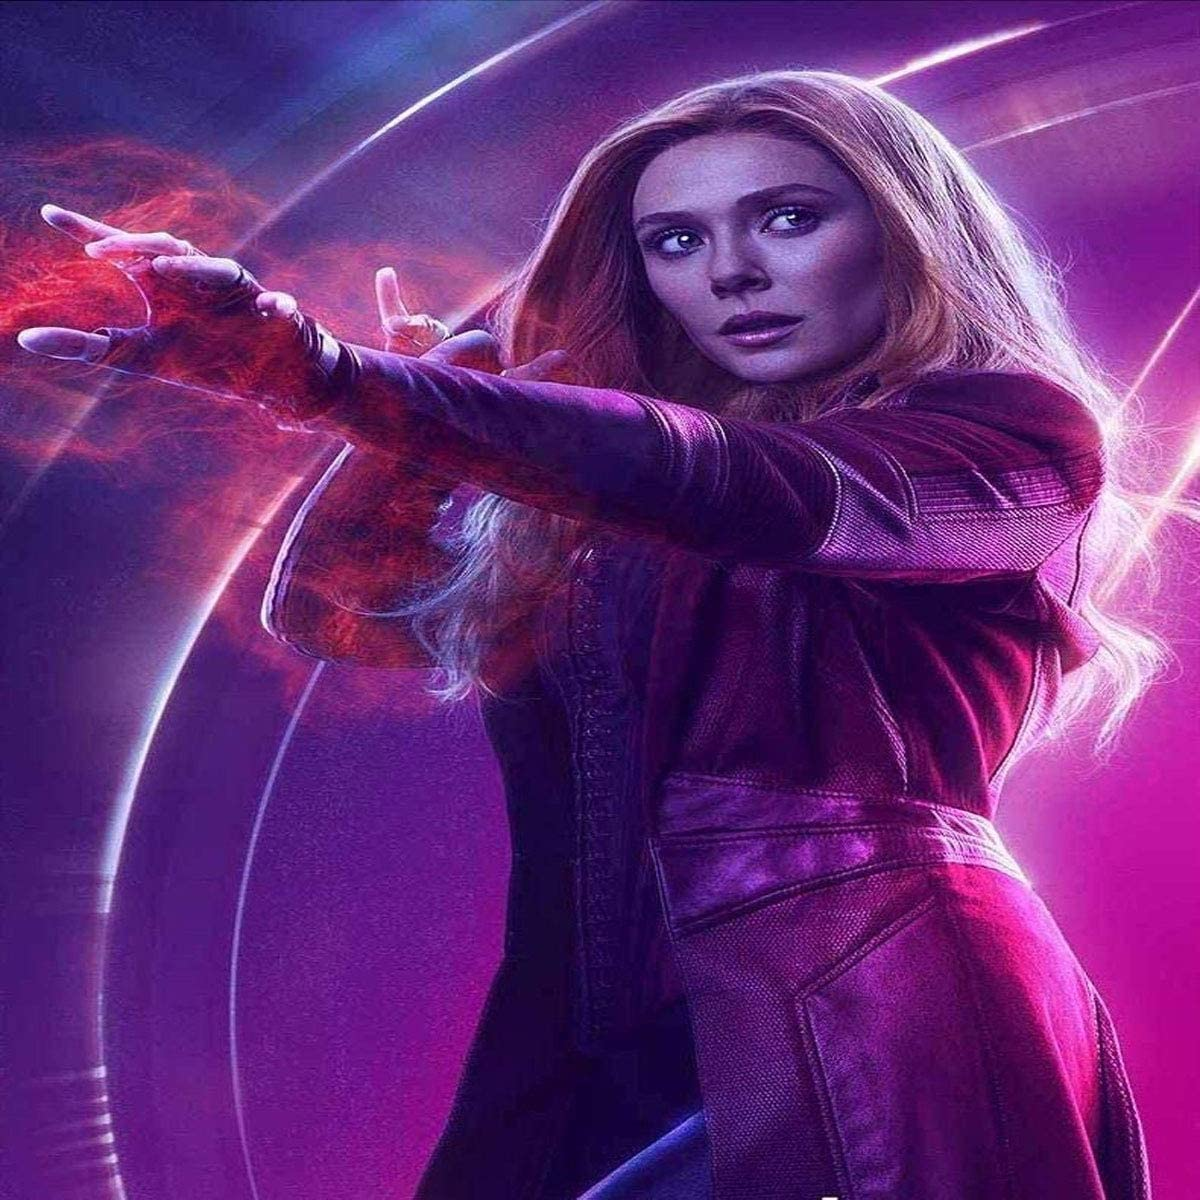 Amazon Com Scarlet Witch The Avengers Infinity War 2018 Elizabeth Olsen 12 X 12 Inches Poster Serene Collections Posters Prints